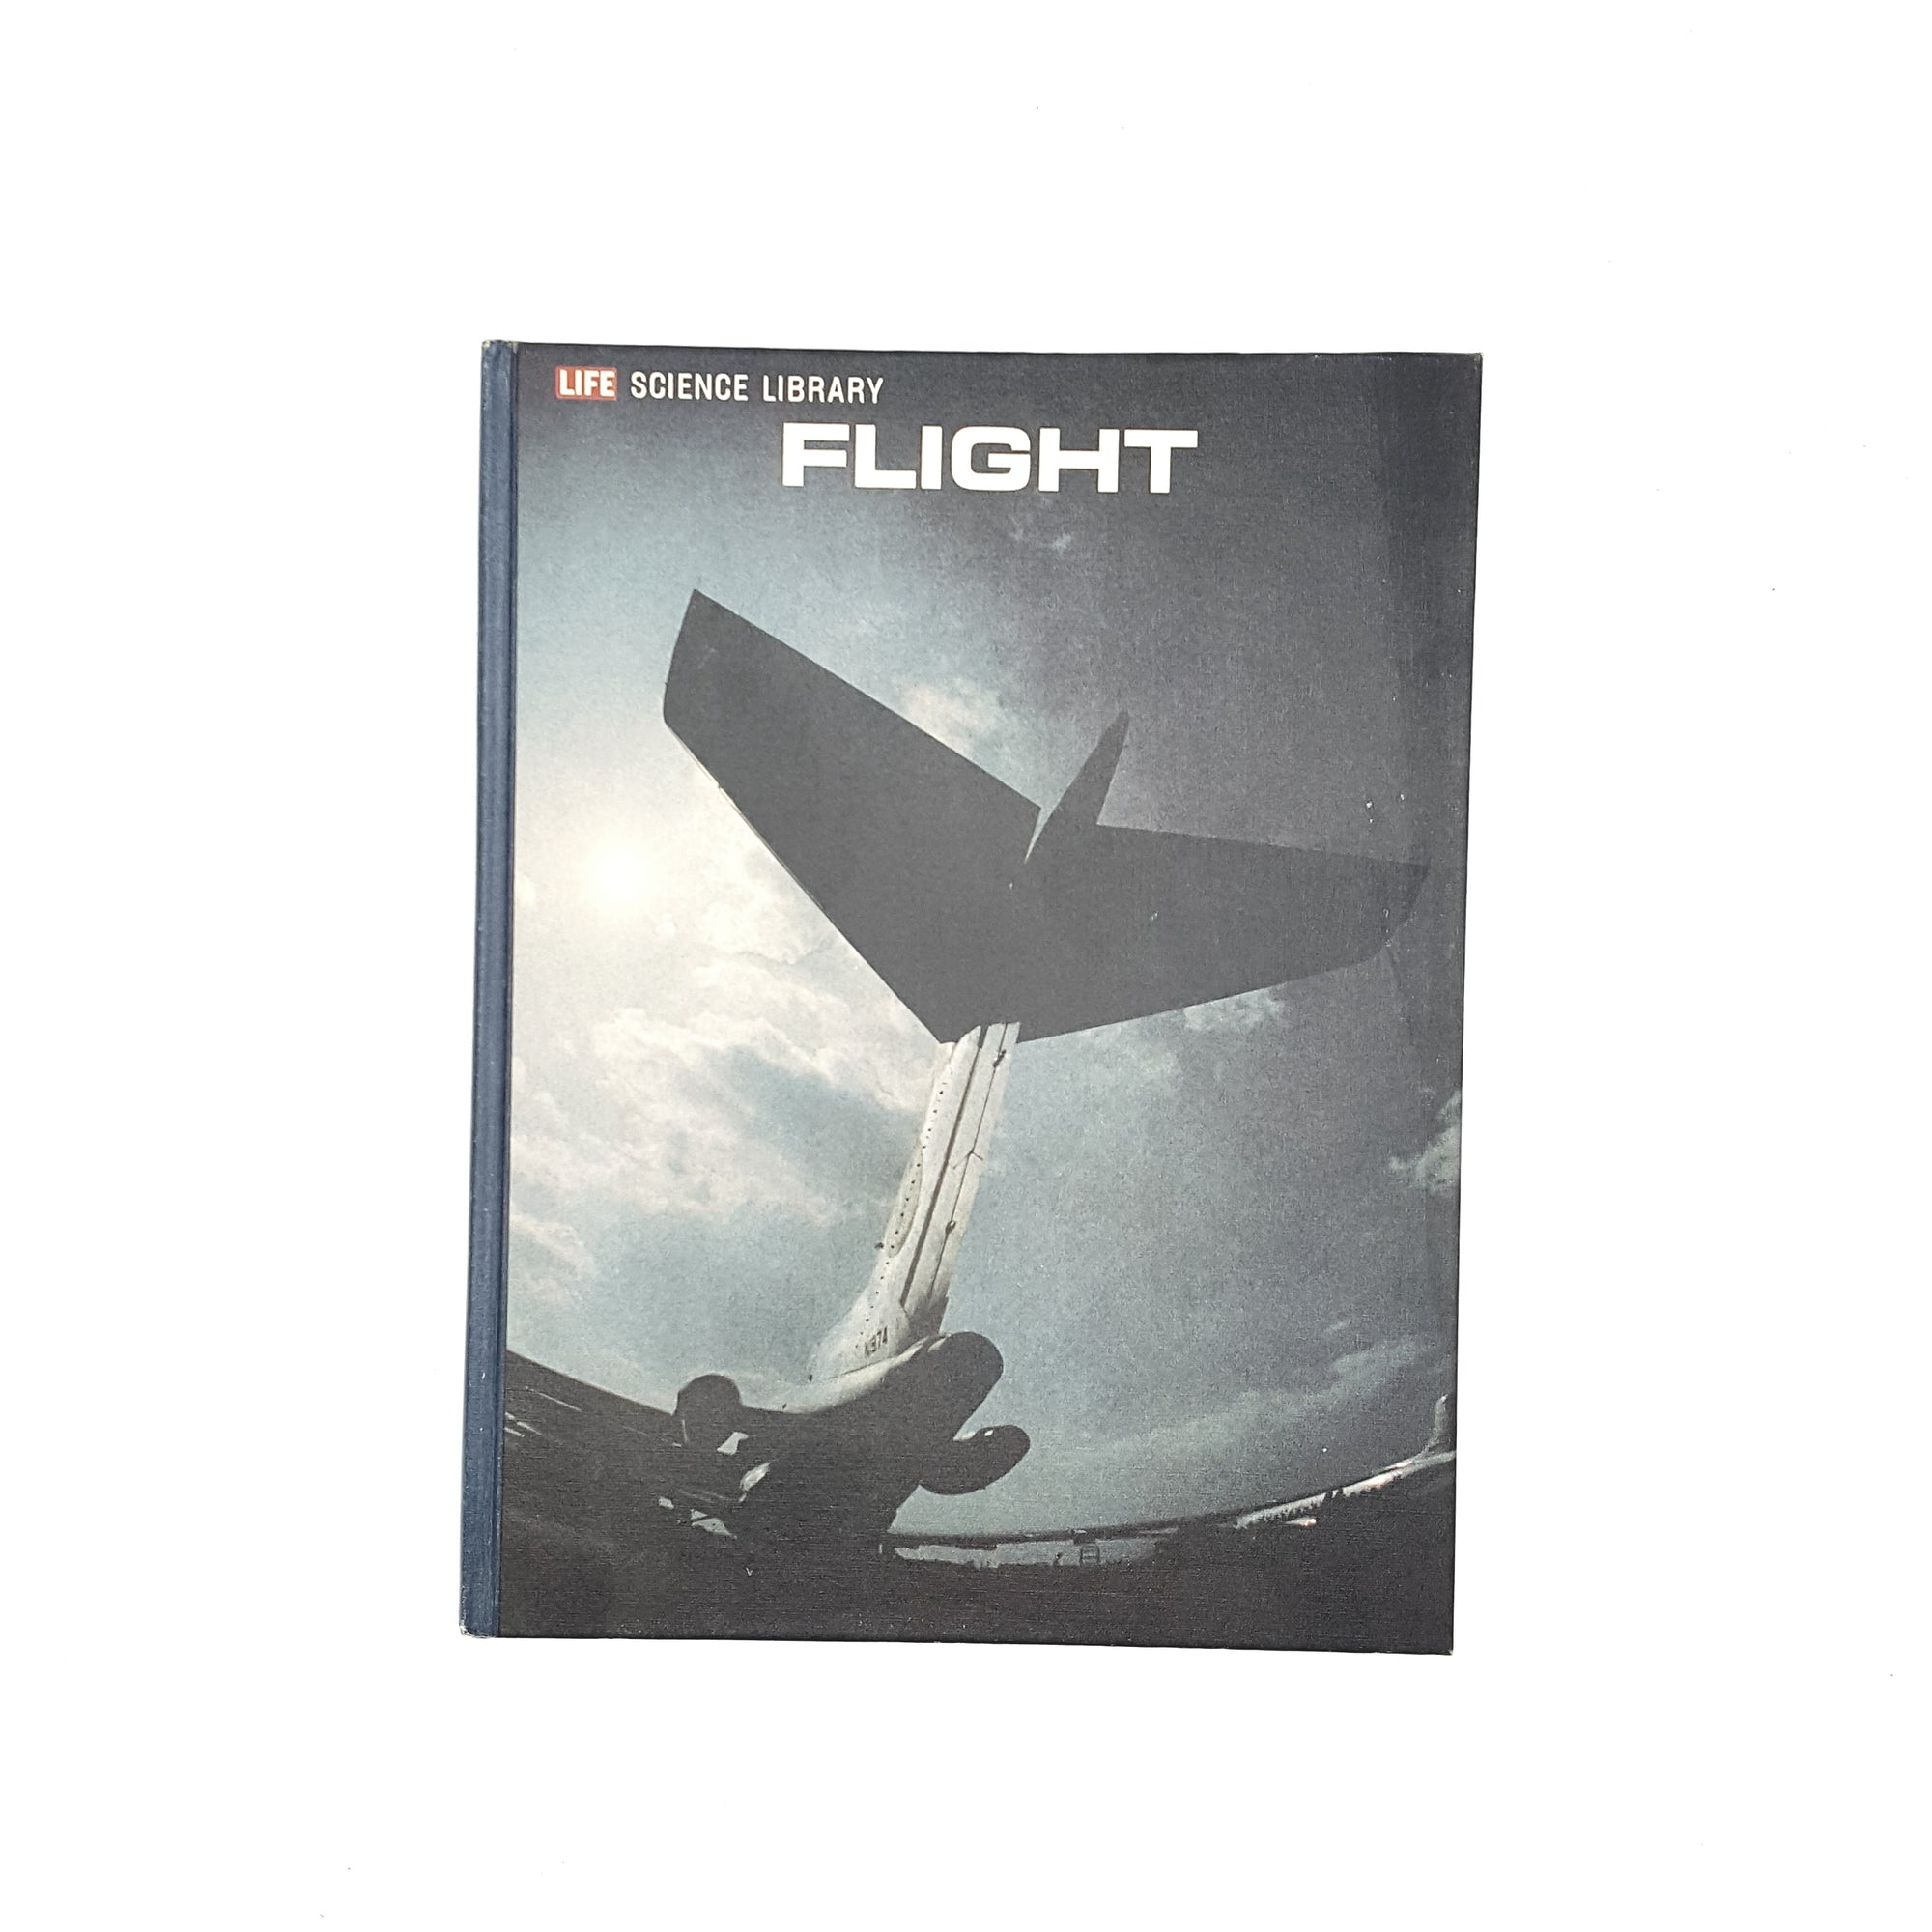 Life Science Library: Flight 1972